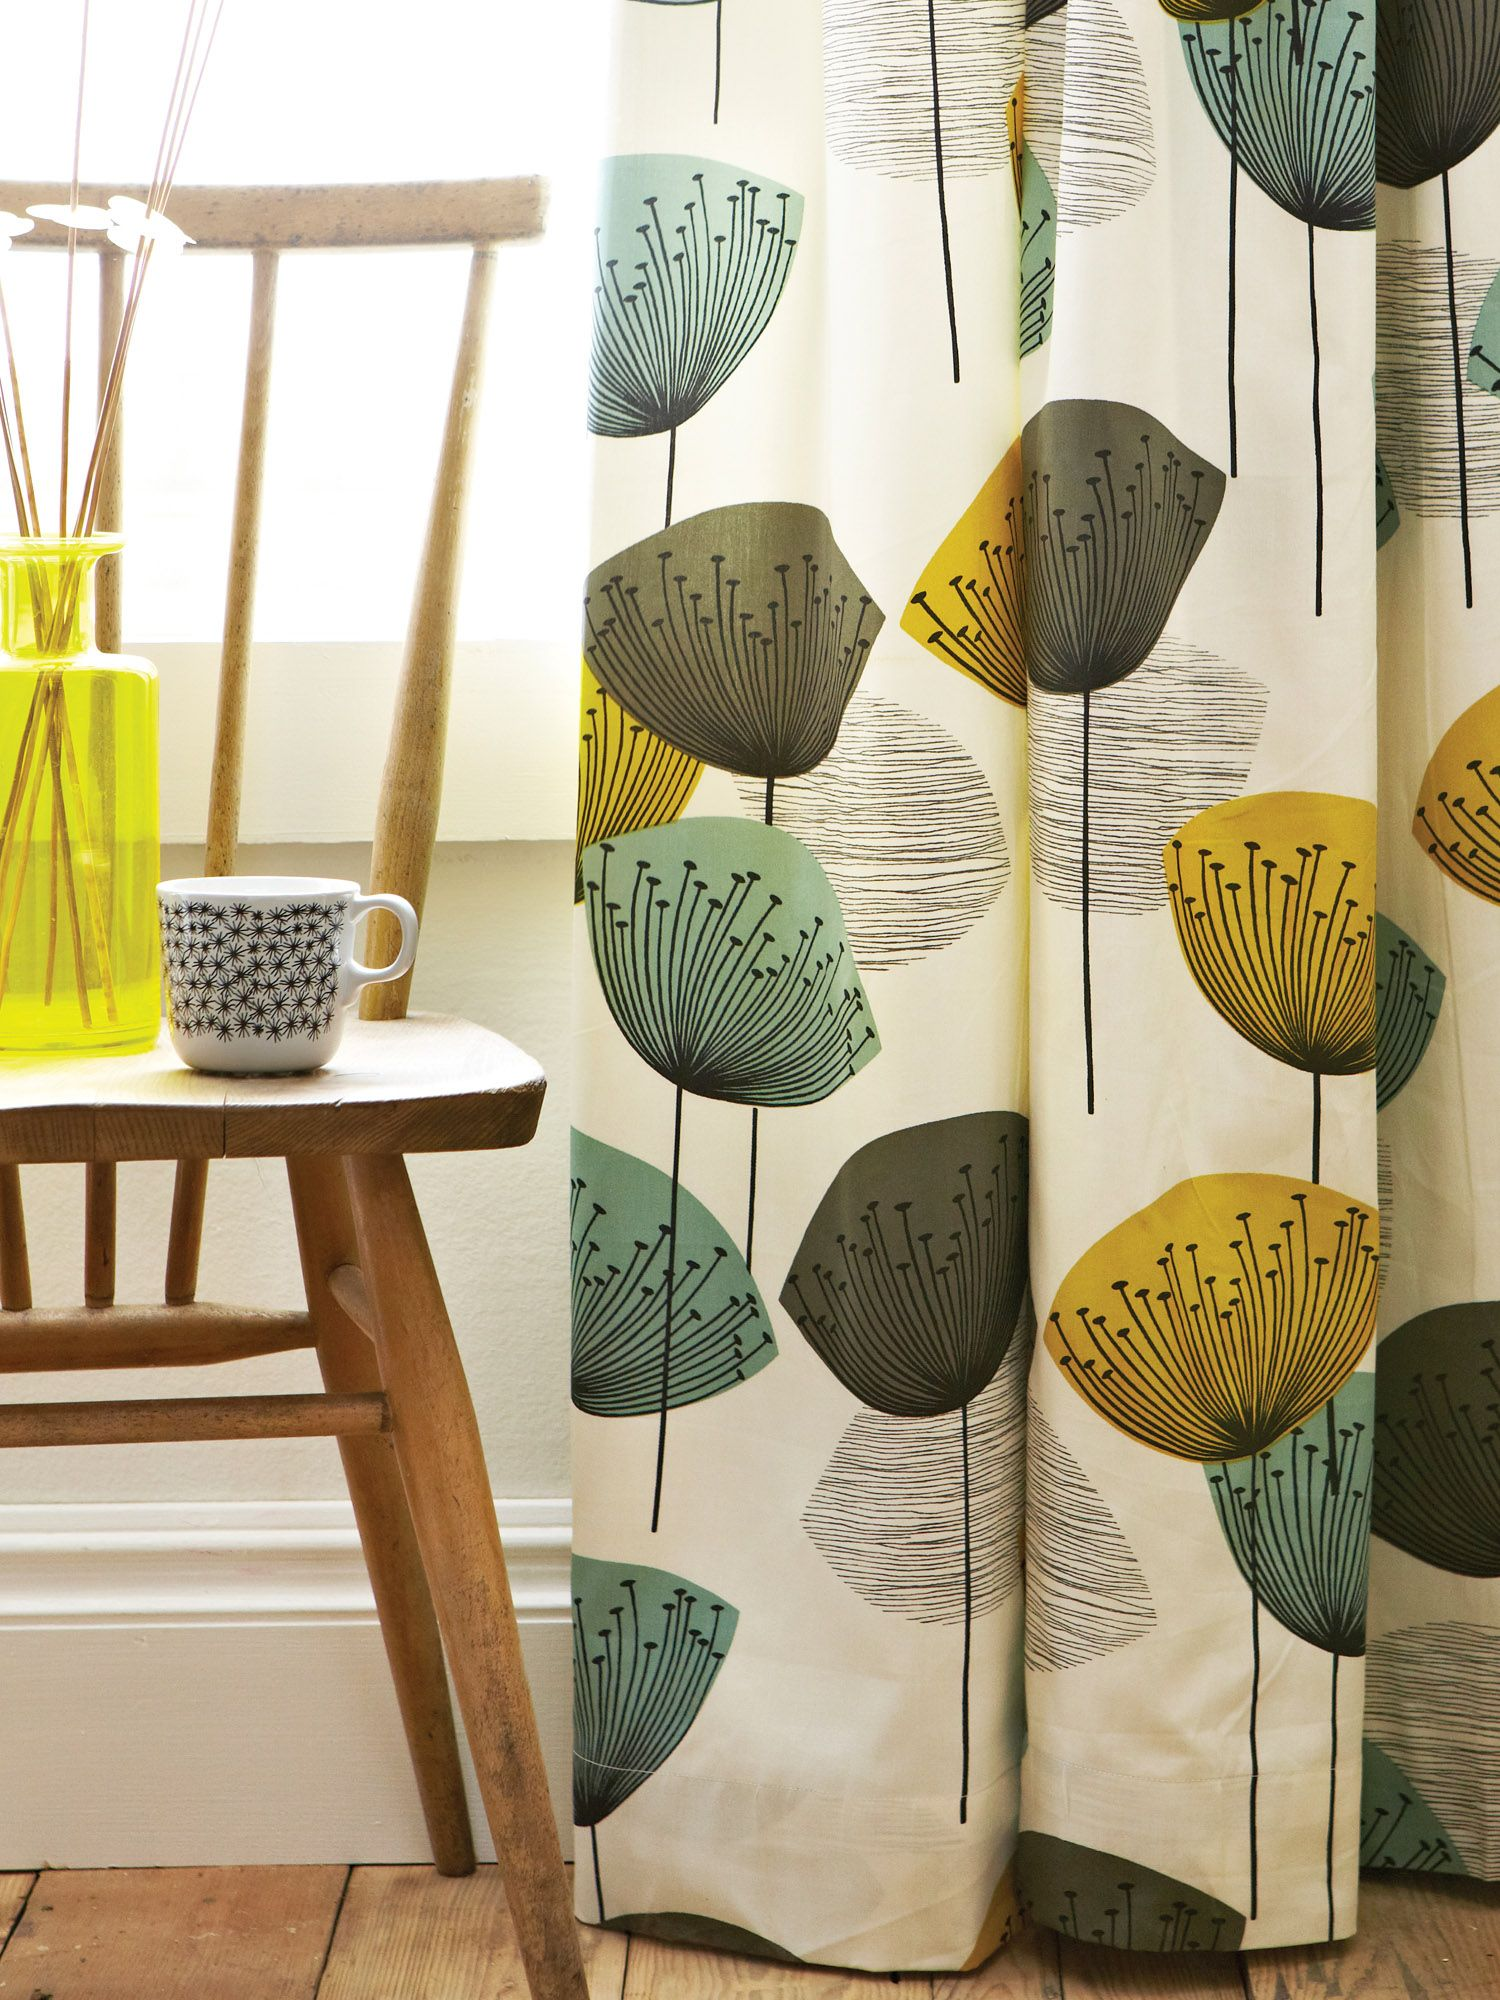 Dandelion clocks lined curtains 66x72 chaffinch